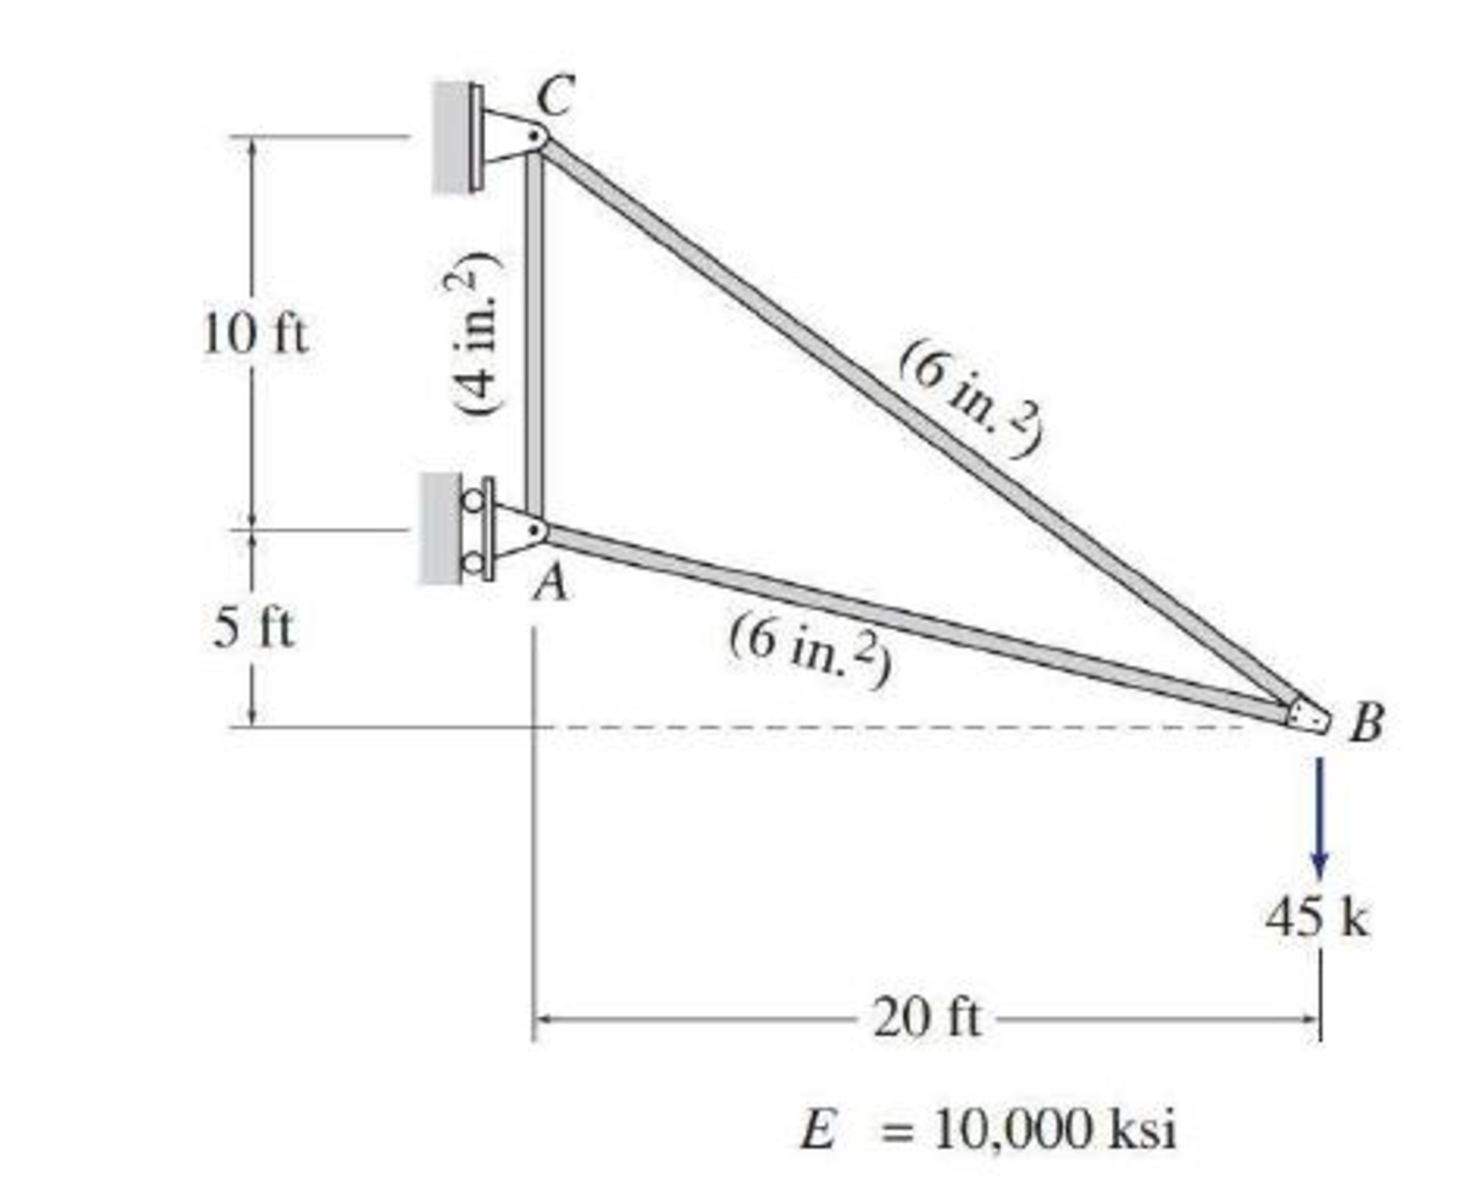 Chapter 7, Problem 4P, Use the virtual work method to determine the horizontal and vertical components of the deflection at